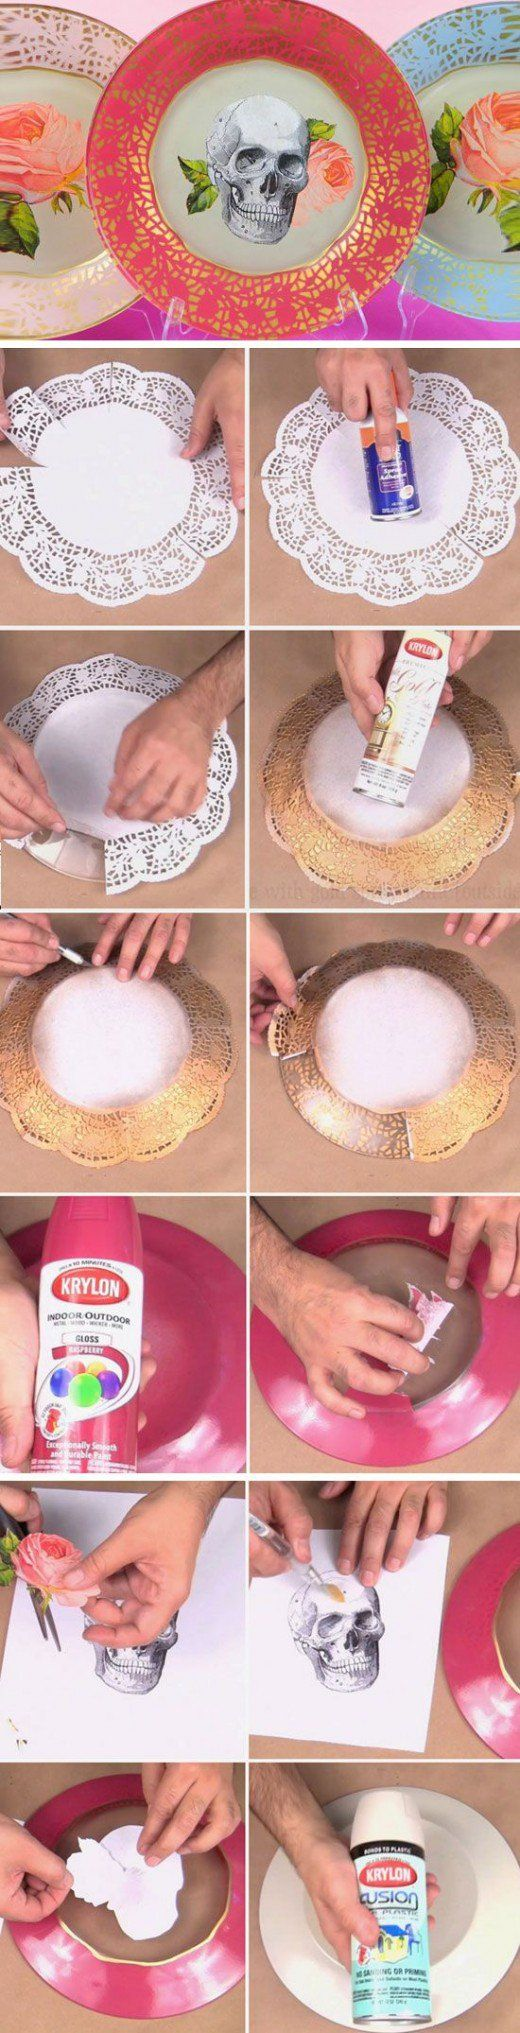 Edgy Boho Plates   DIY Dollar Store Crafts for Teens